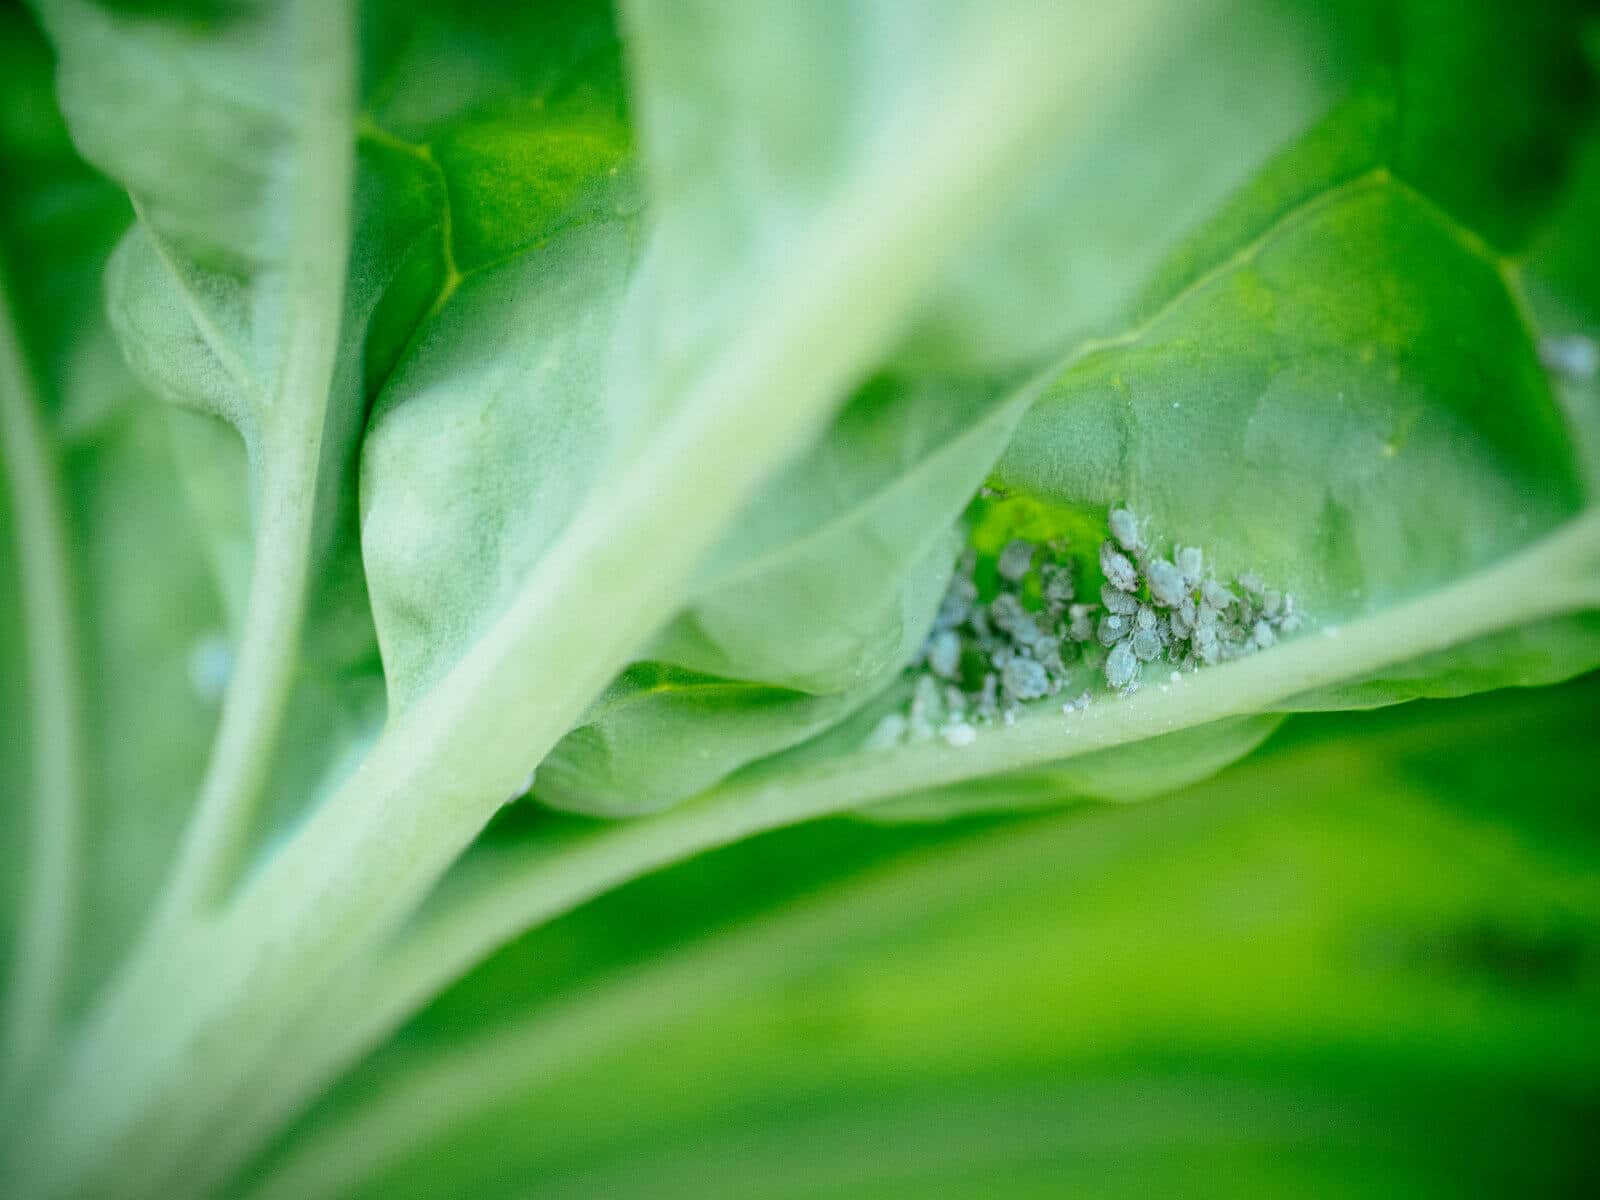 Control aphids naturally without toxic chemicals